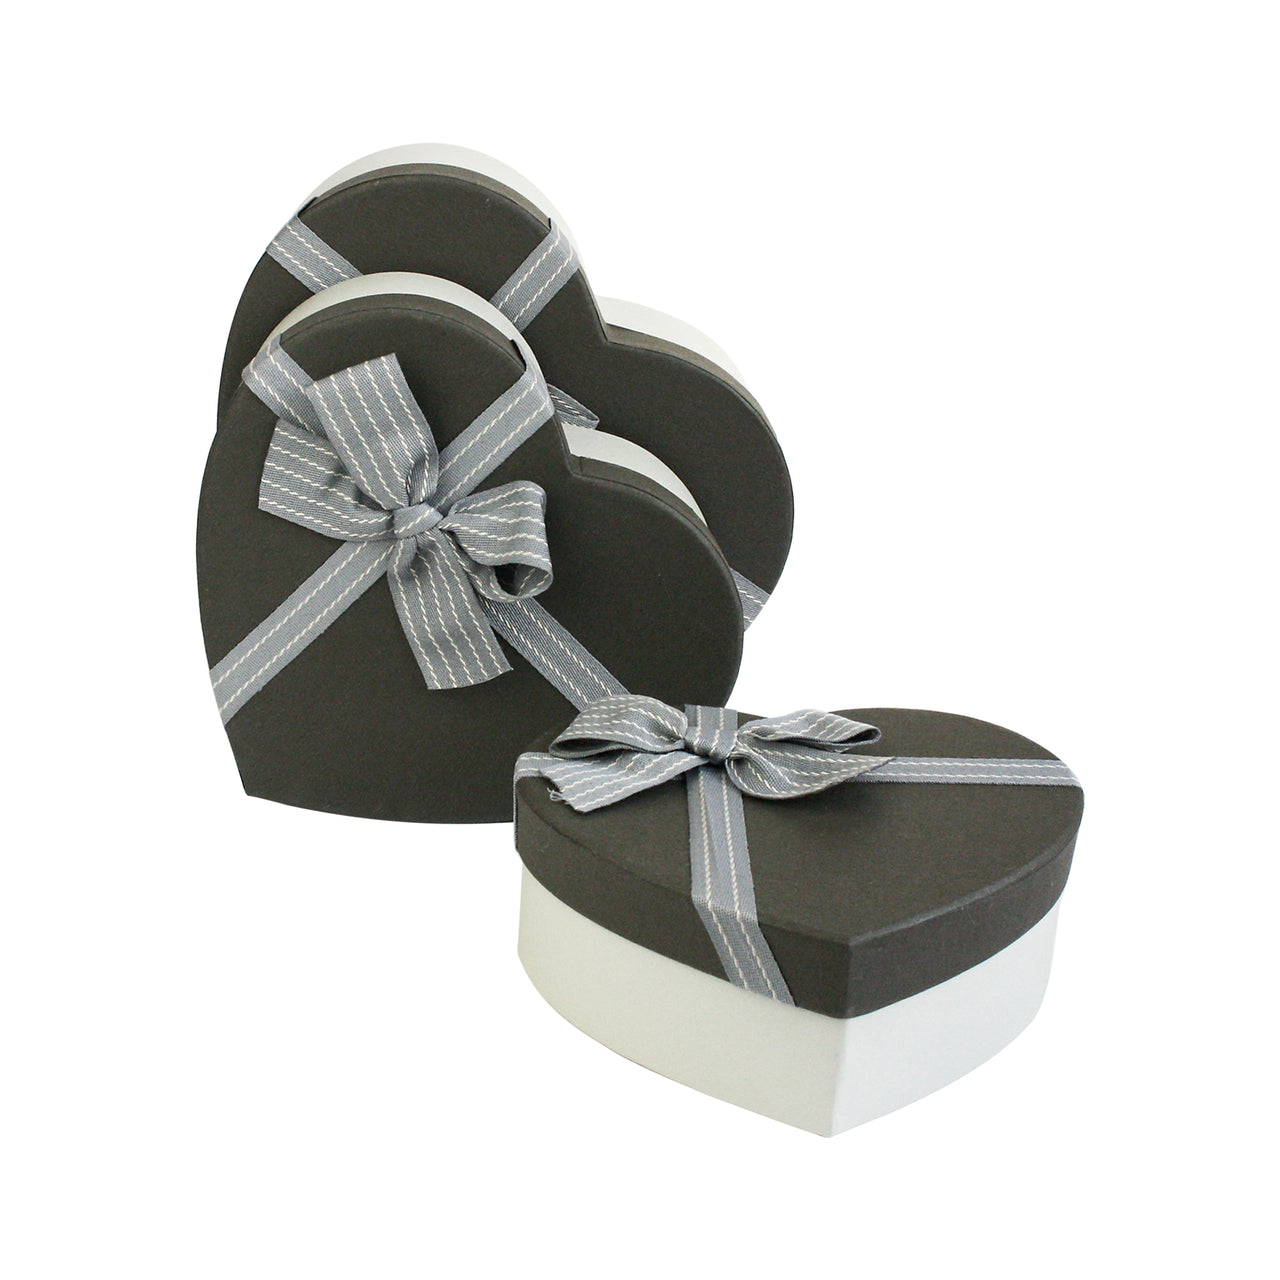 Grey Stripped Bow Gift Box - Set Of 3